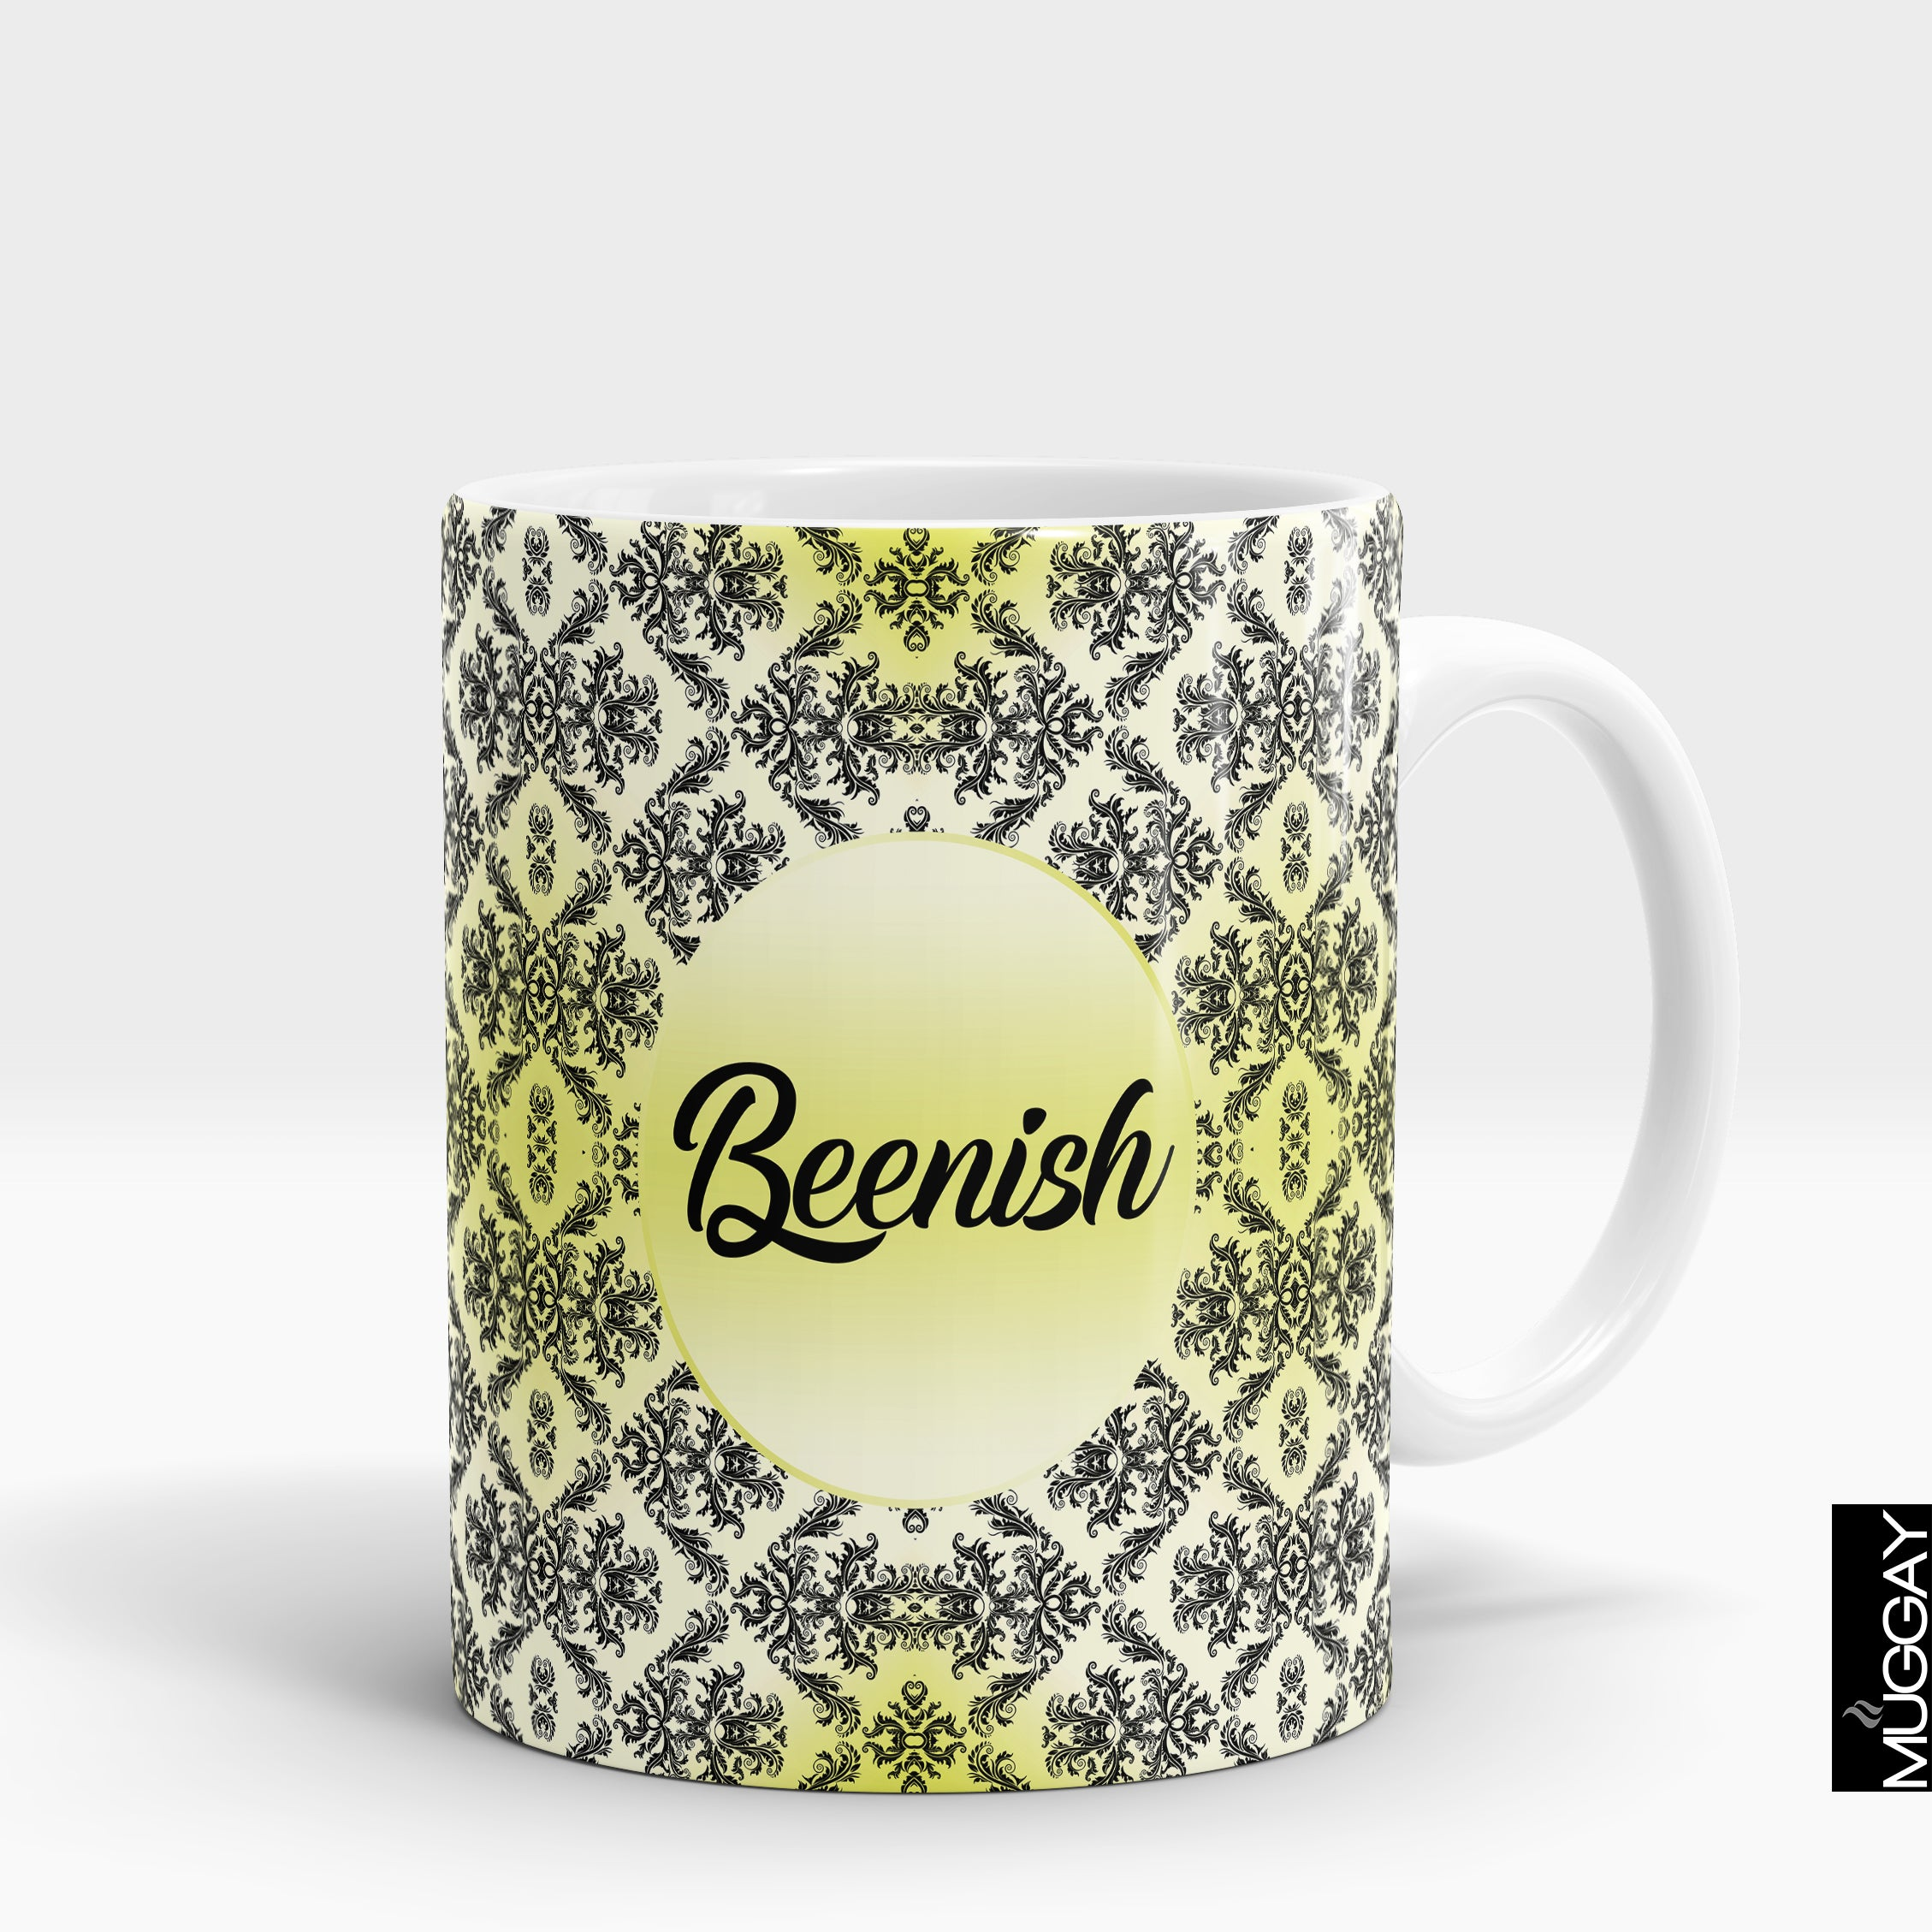 Beenish Mug - Muggay.com - Mugs - Printing shop - truck Art mugs - Mug printing - Customized printing - Digital printing - Muggay